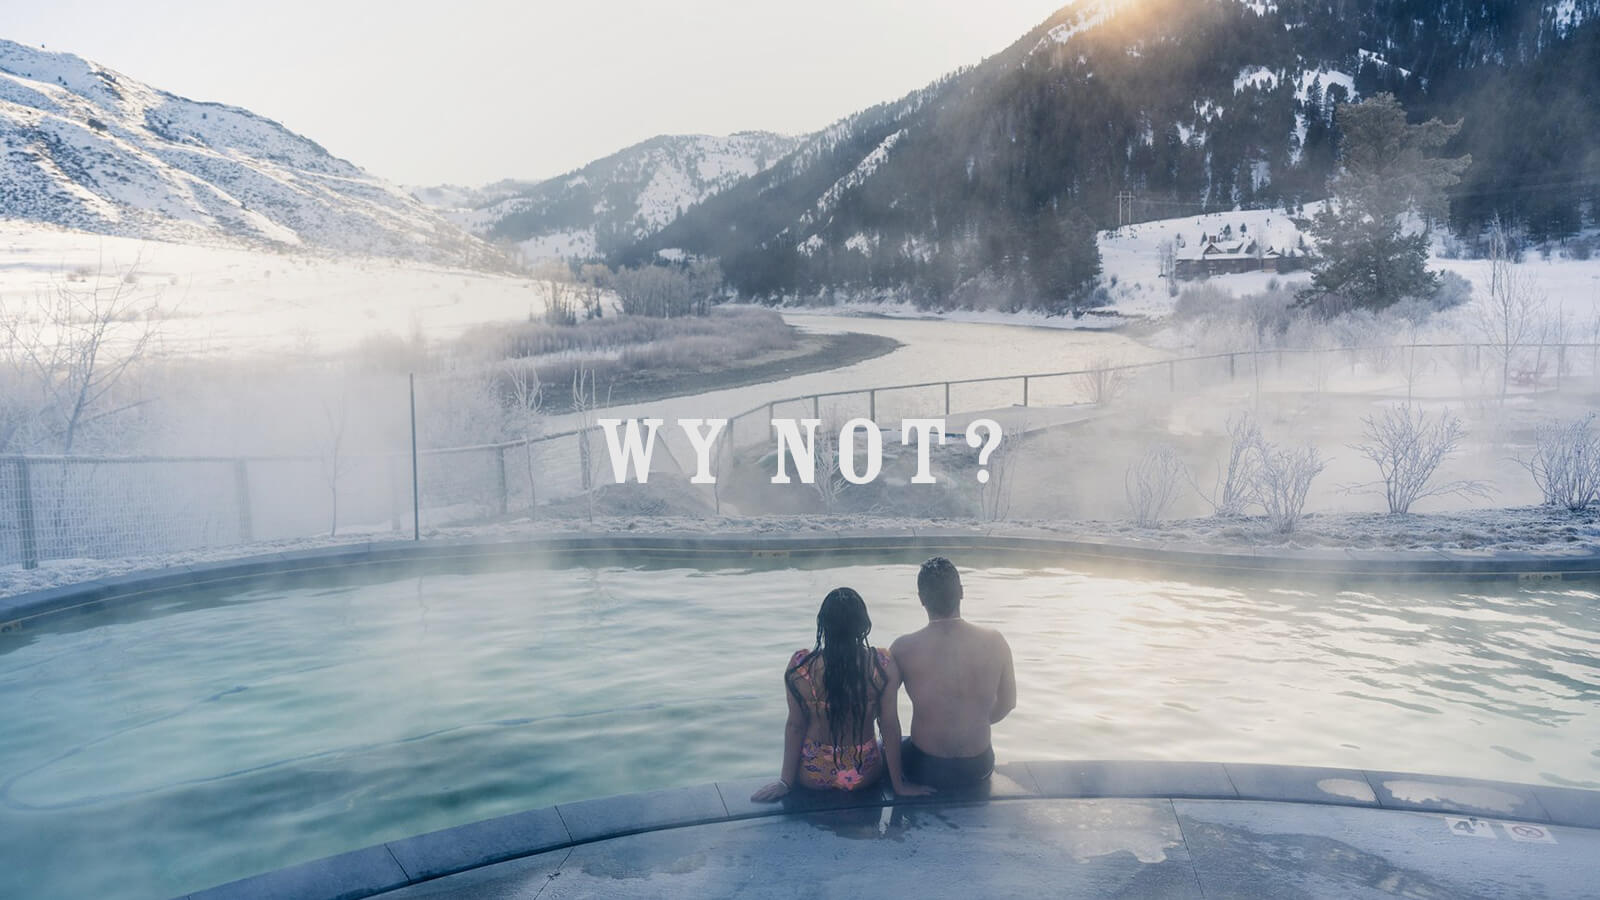 WY NOT?